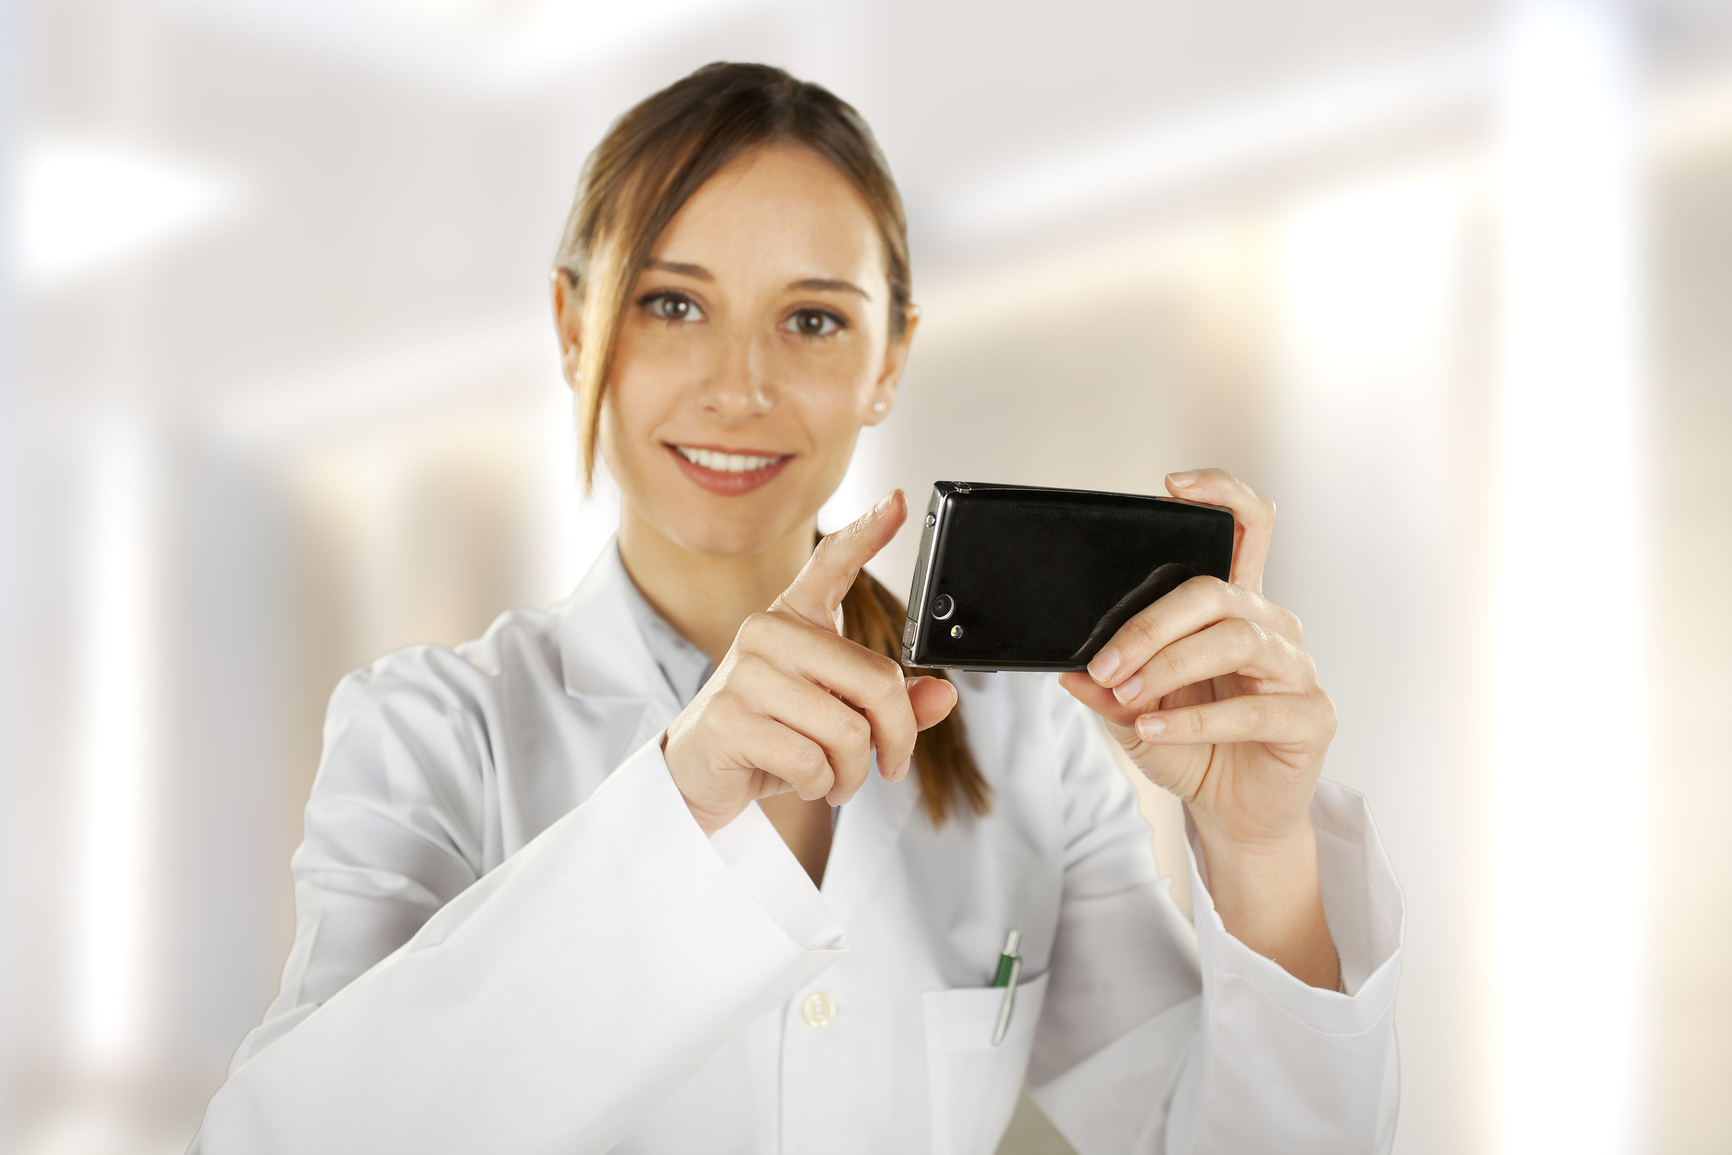 EHR for Mobile Clinics